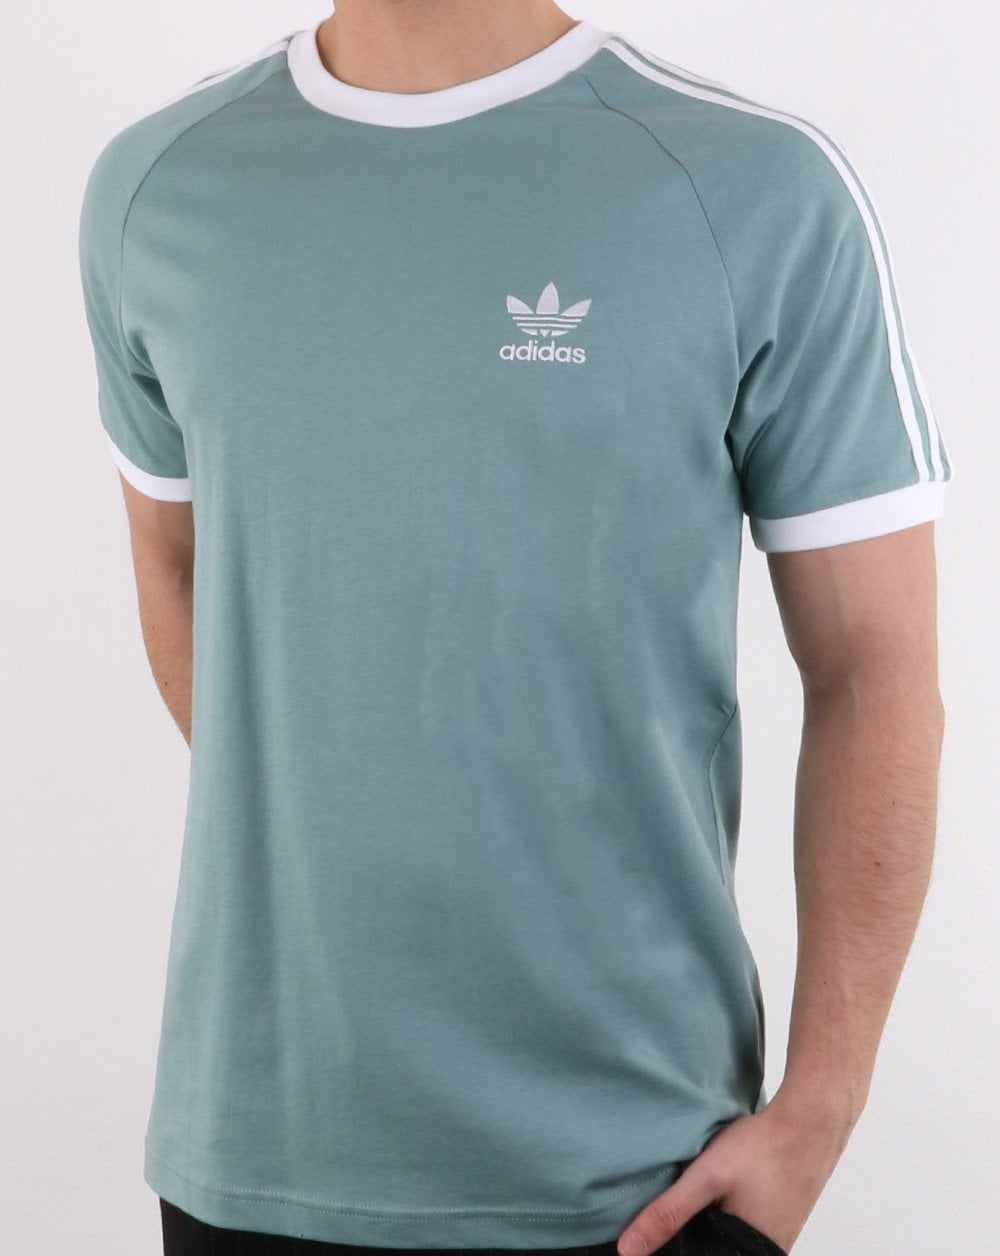 Adidas Originals 3 Stripes T Shirt Vapour Steel